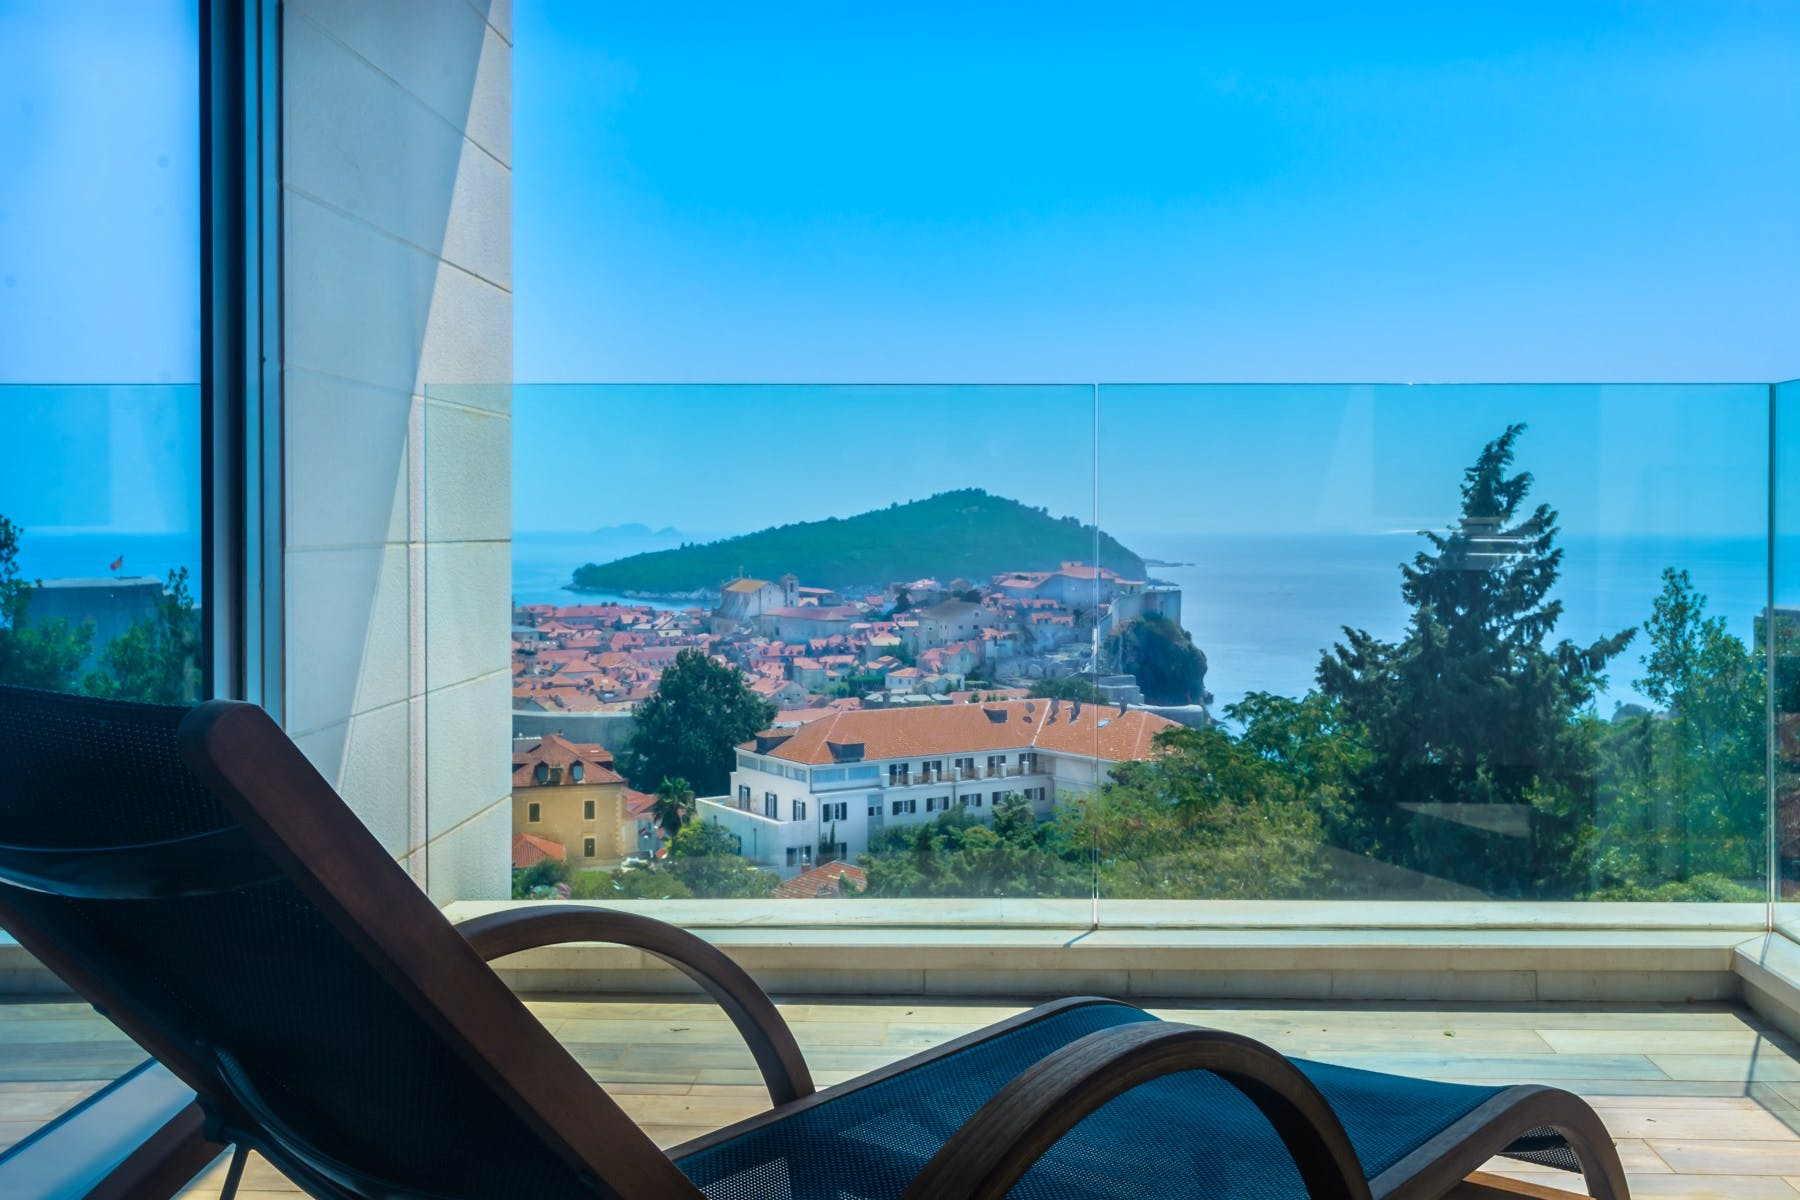 Sea view and view of the Old Town of Dubrovnik from the balcony